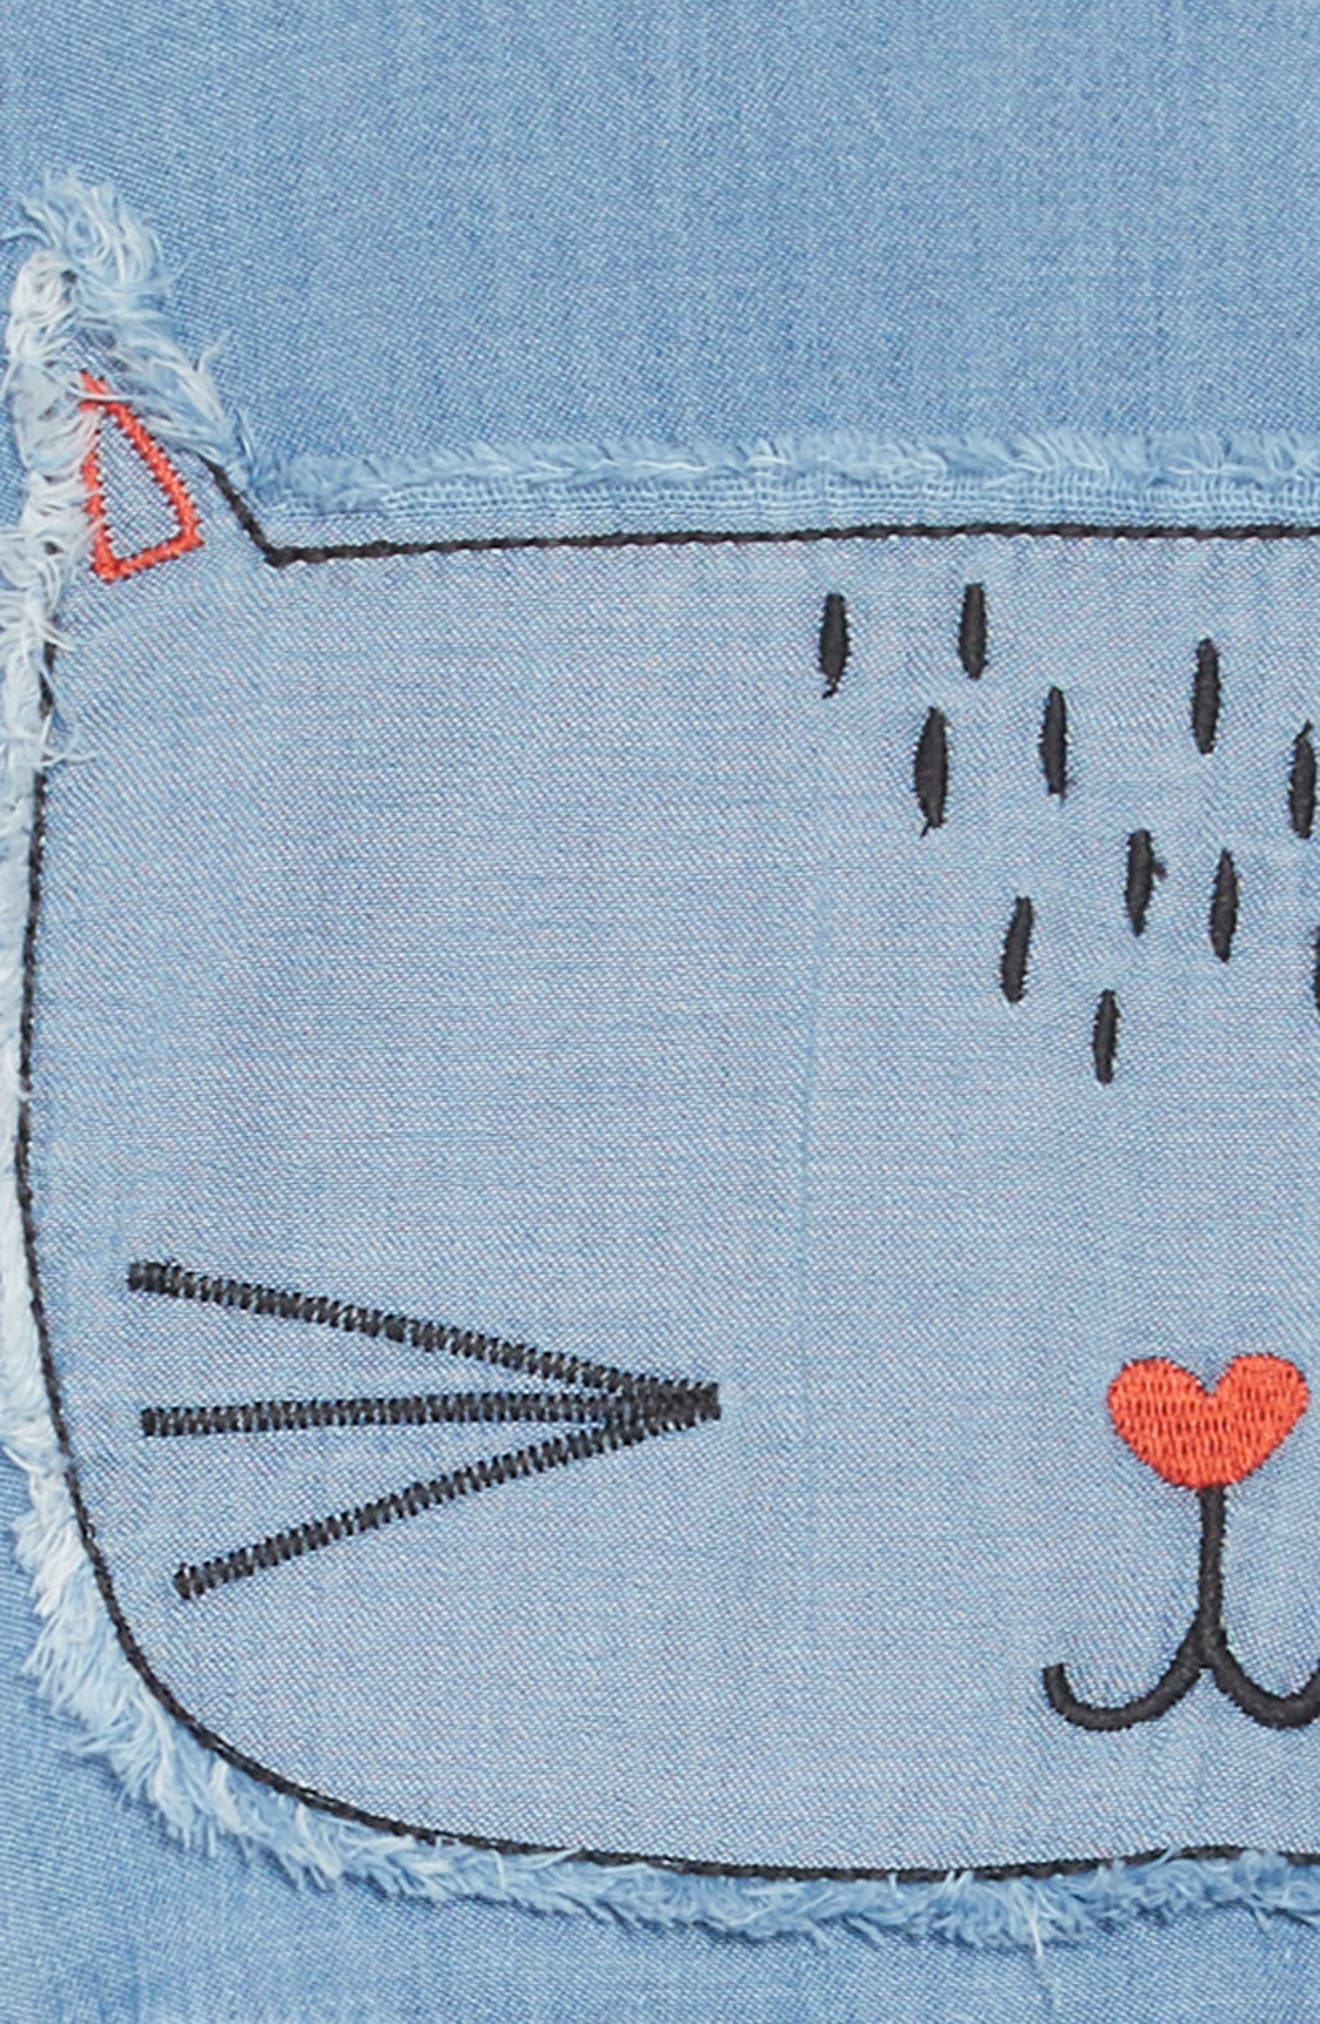 Embroidered Chambray Dress,                             Alternate thumbnail 3, color,                             450